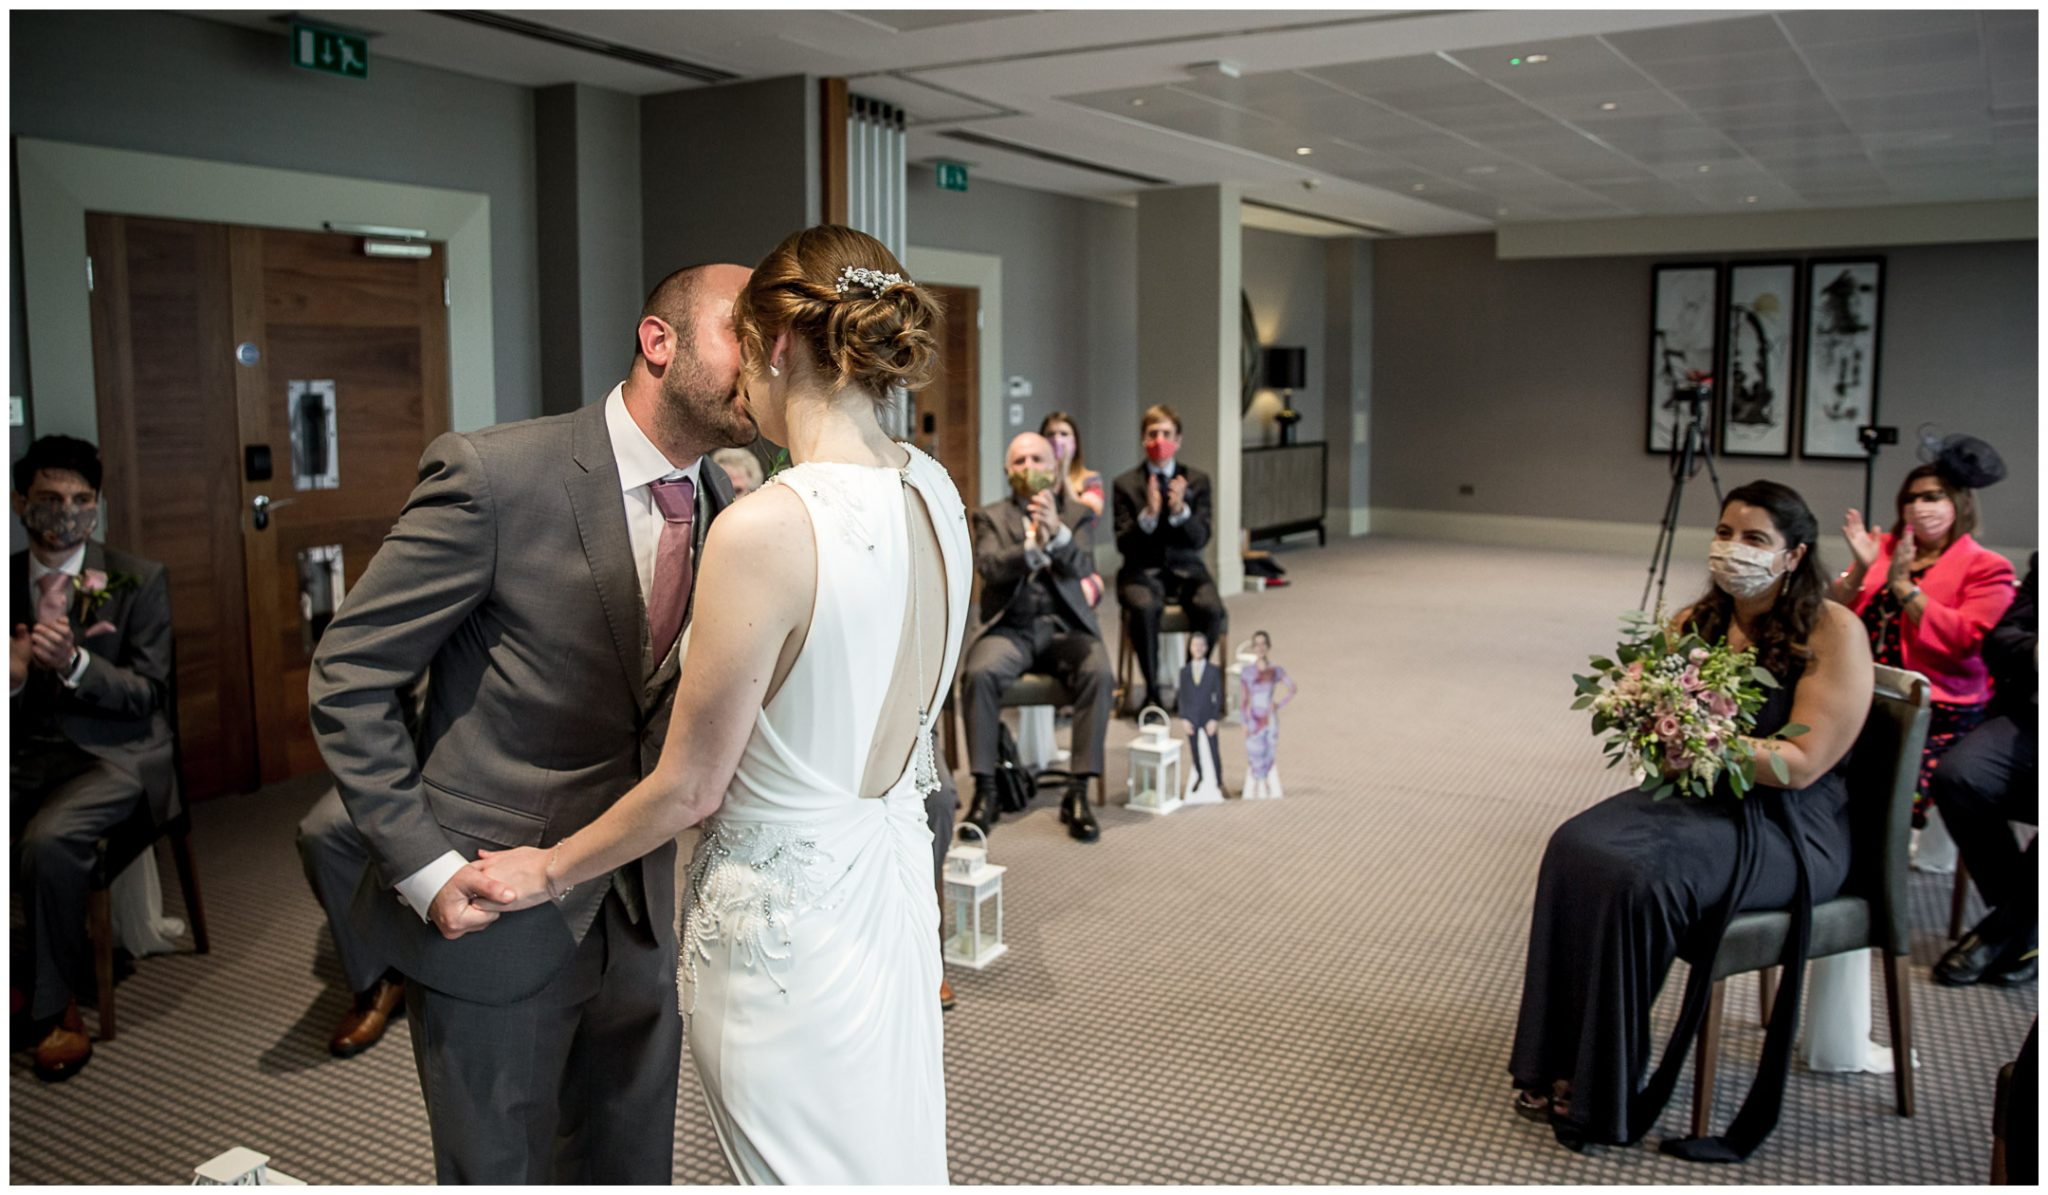 The newly married couple's first kiss as husband and wife